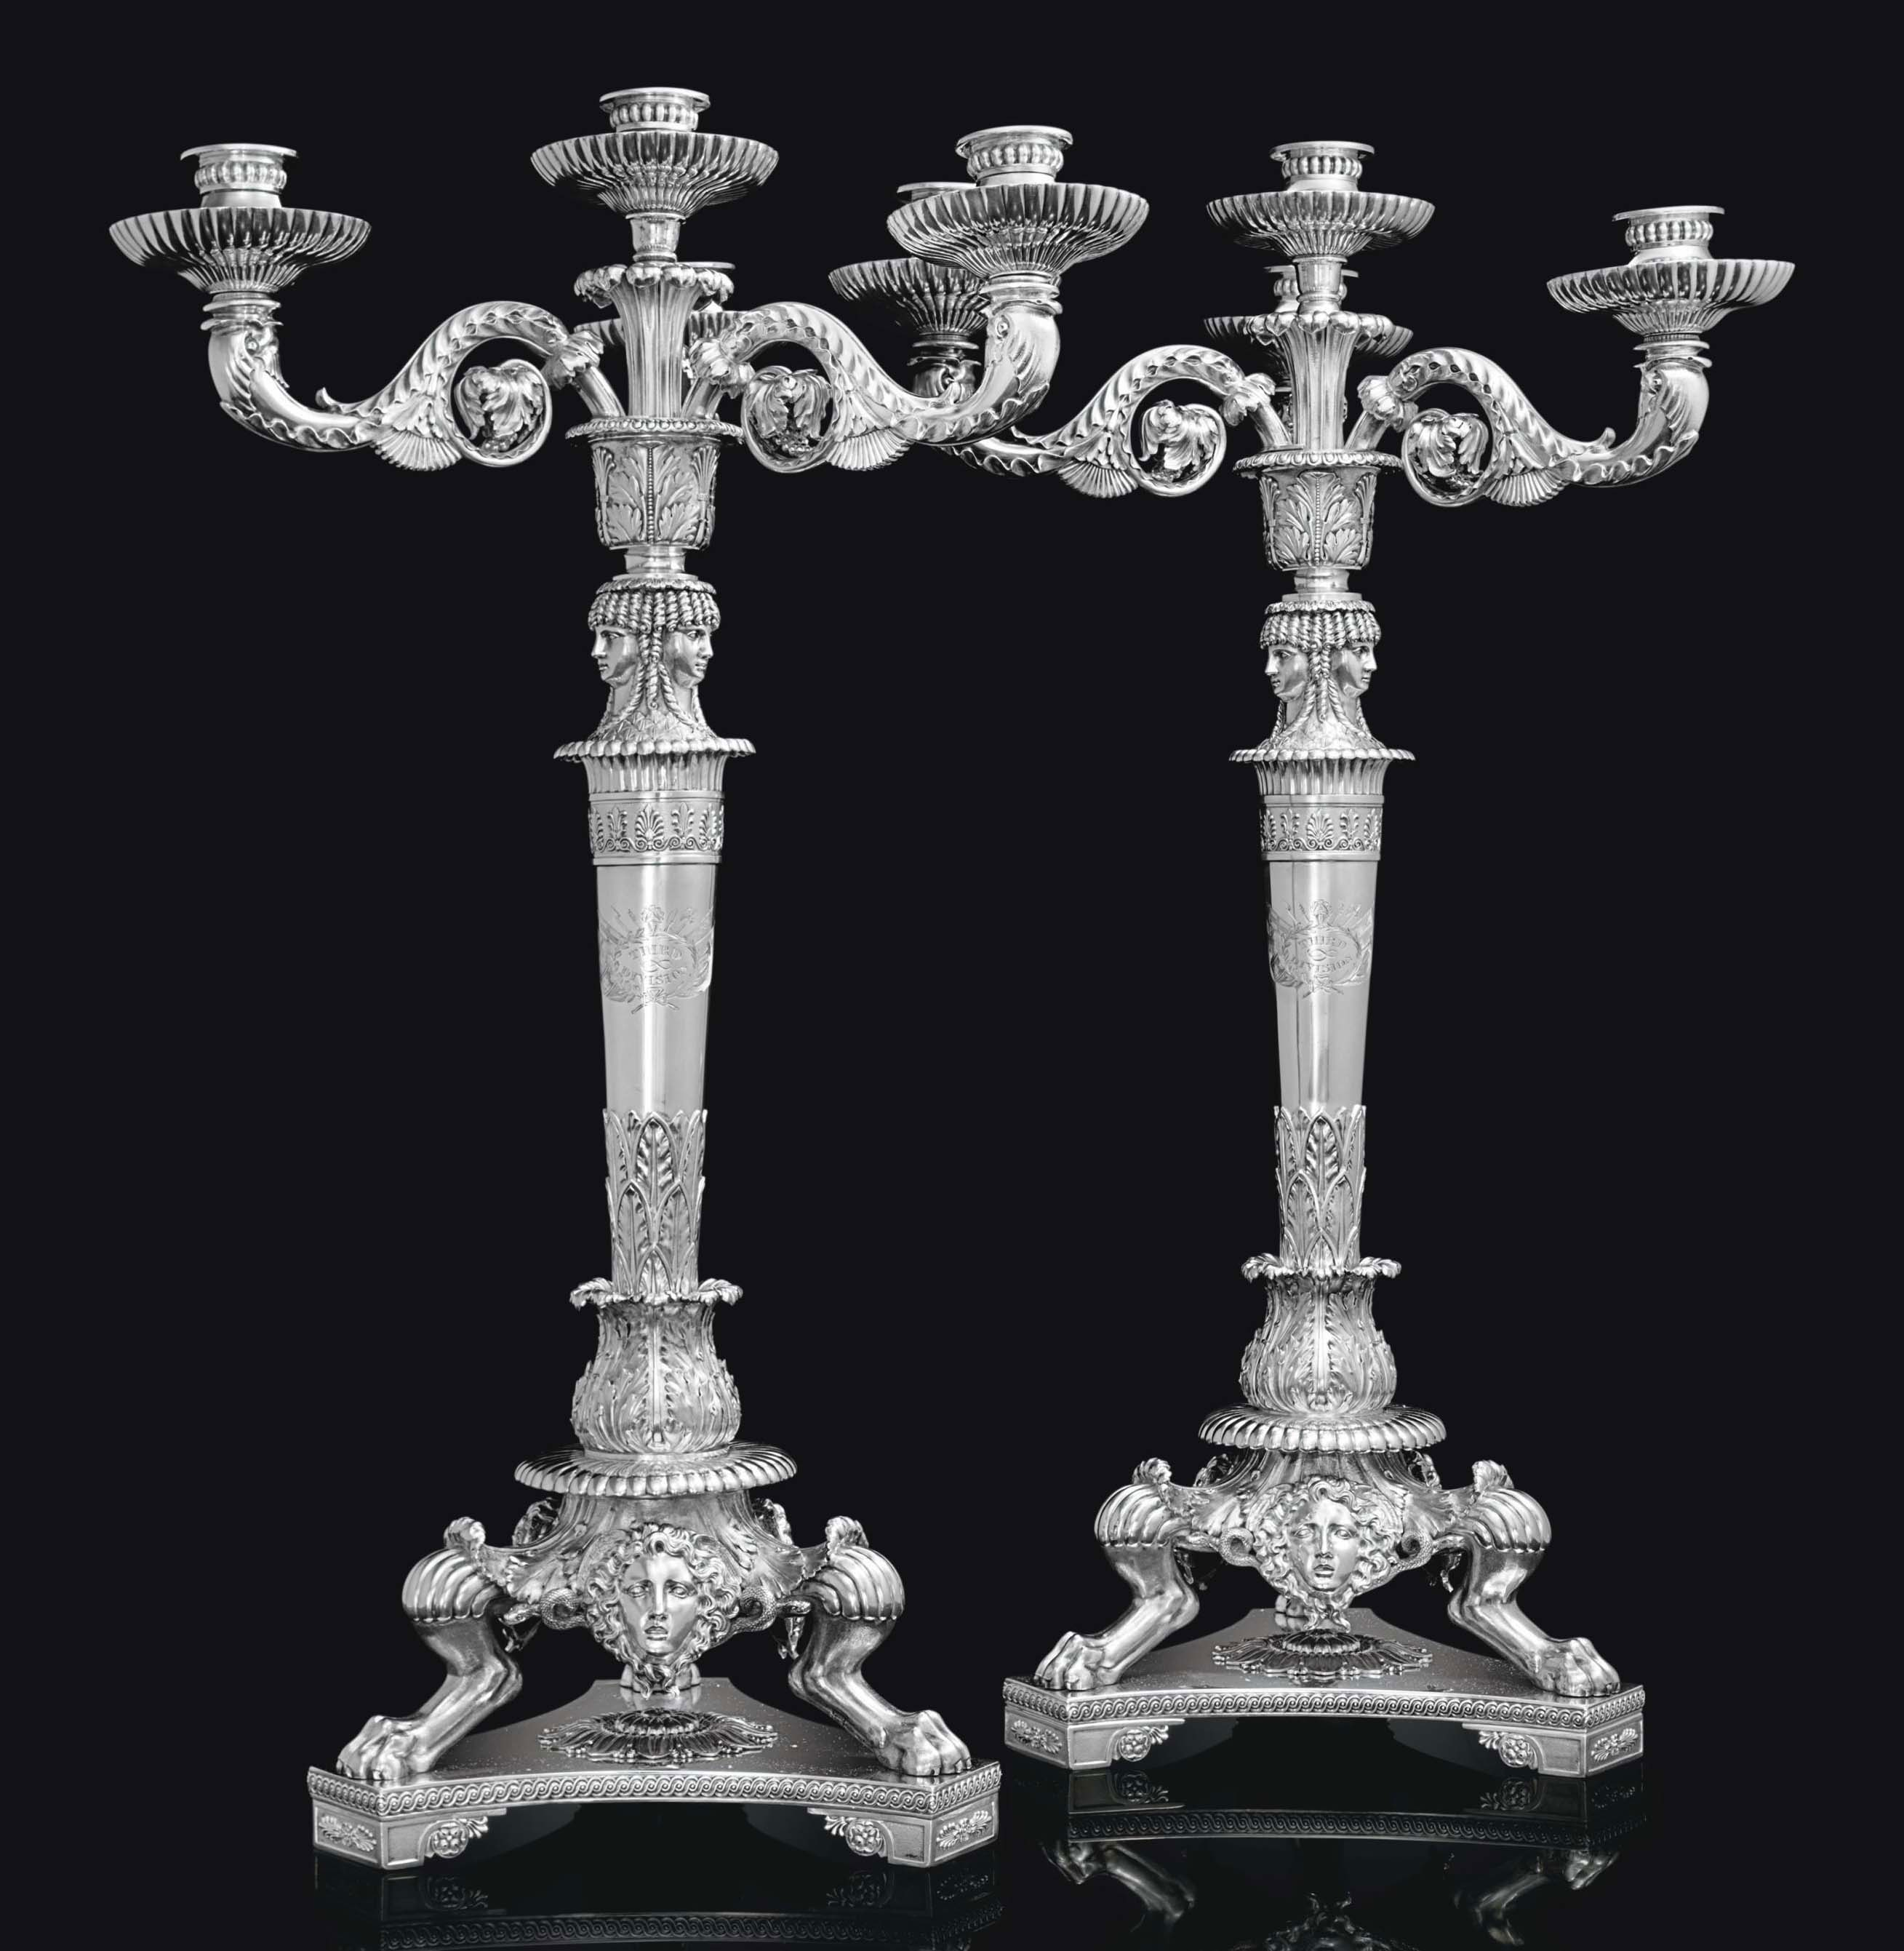 AN IMPORTANT PAIR OF REGENCY SILVER FOUR-LIGHT CANDELABRA FROM THE PICTON SERVICE